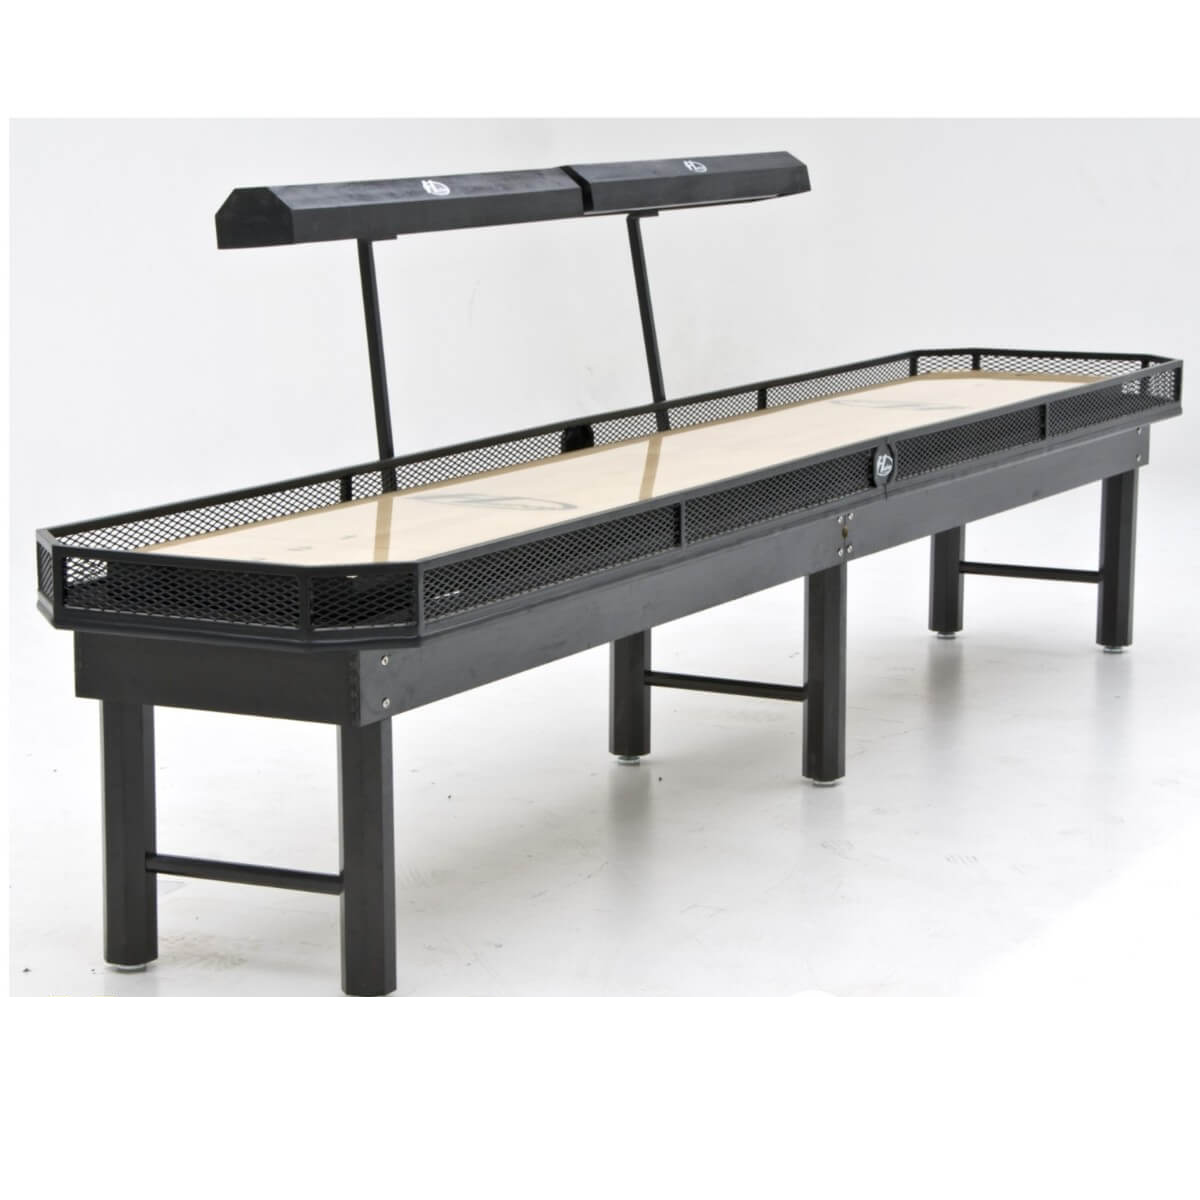 Hudson Octagon Shuffleboard Table 9'-22' - Gaming Blaze